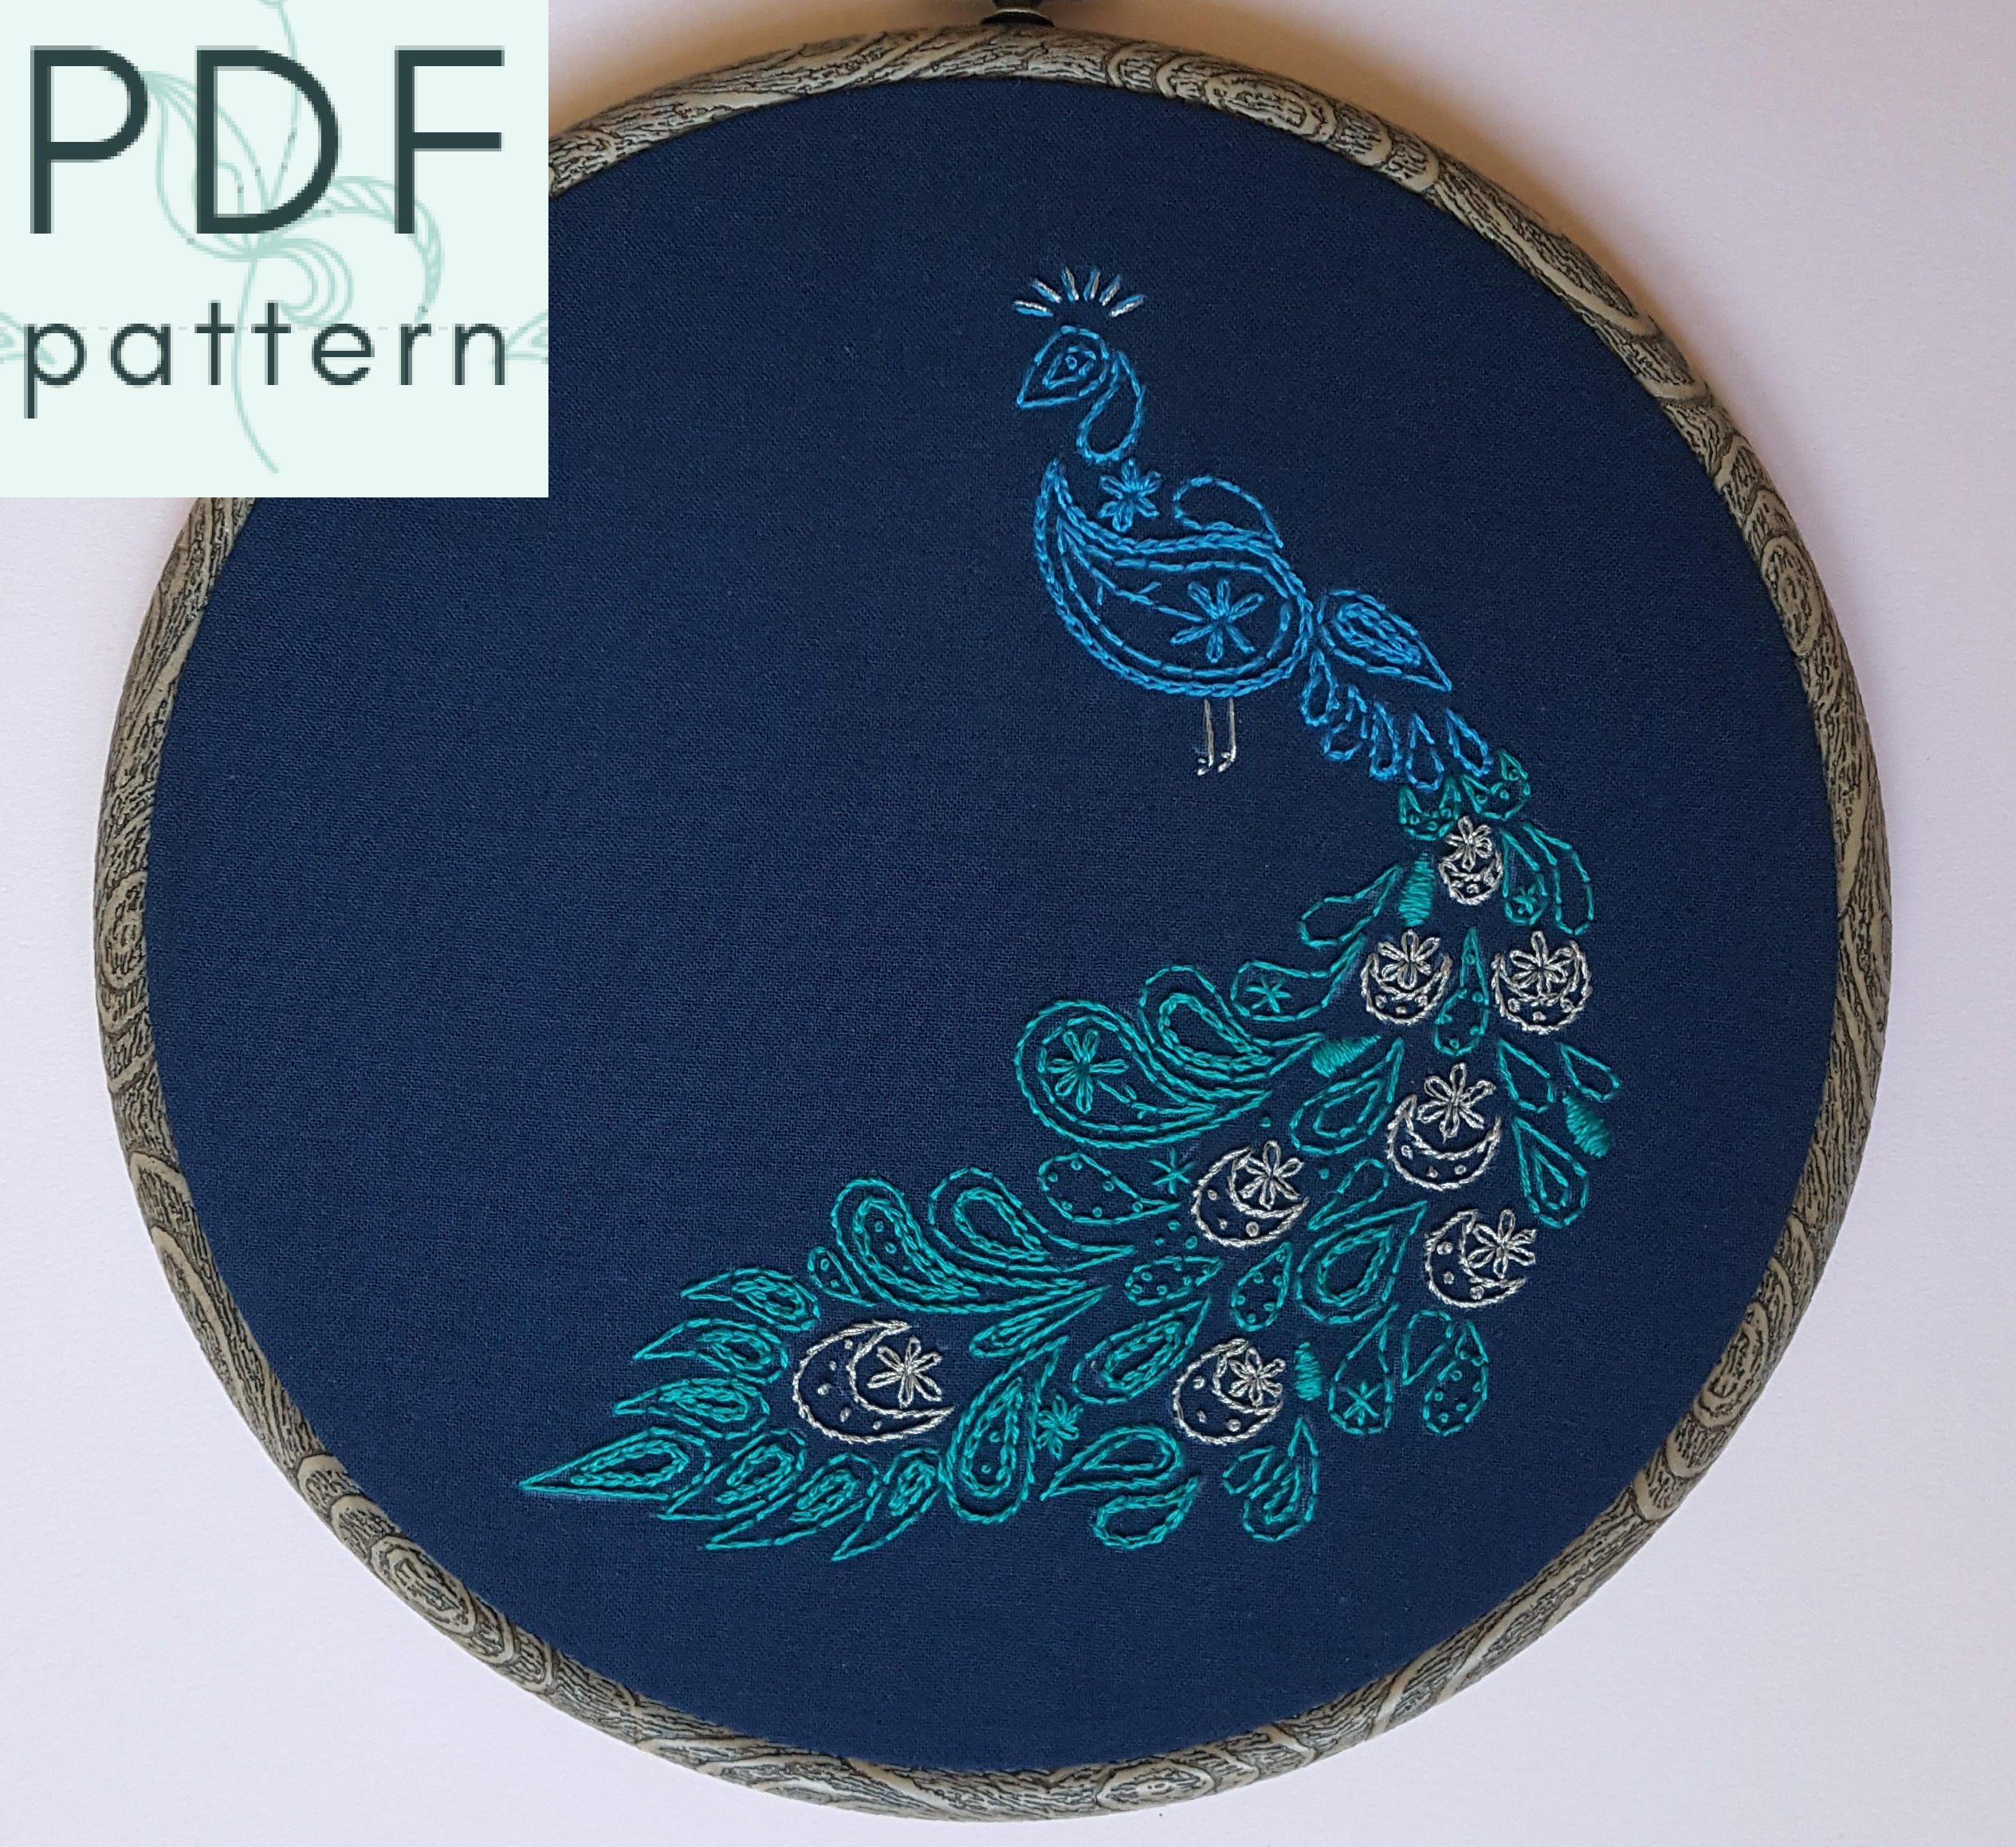 Peacock Embroidery Patterns Paisley Peacock Embroidery Pattern Pdf Hand Embroidery Contemporary Embroidery Hoop Art Instant Download